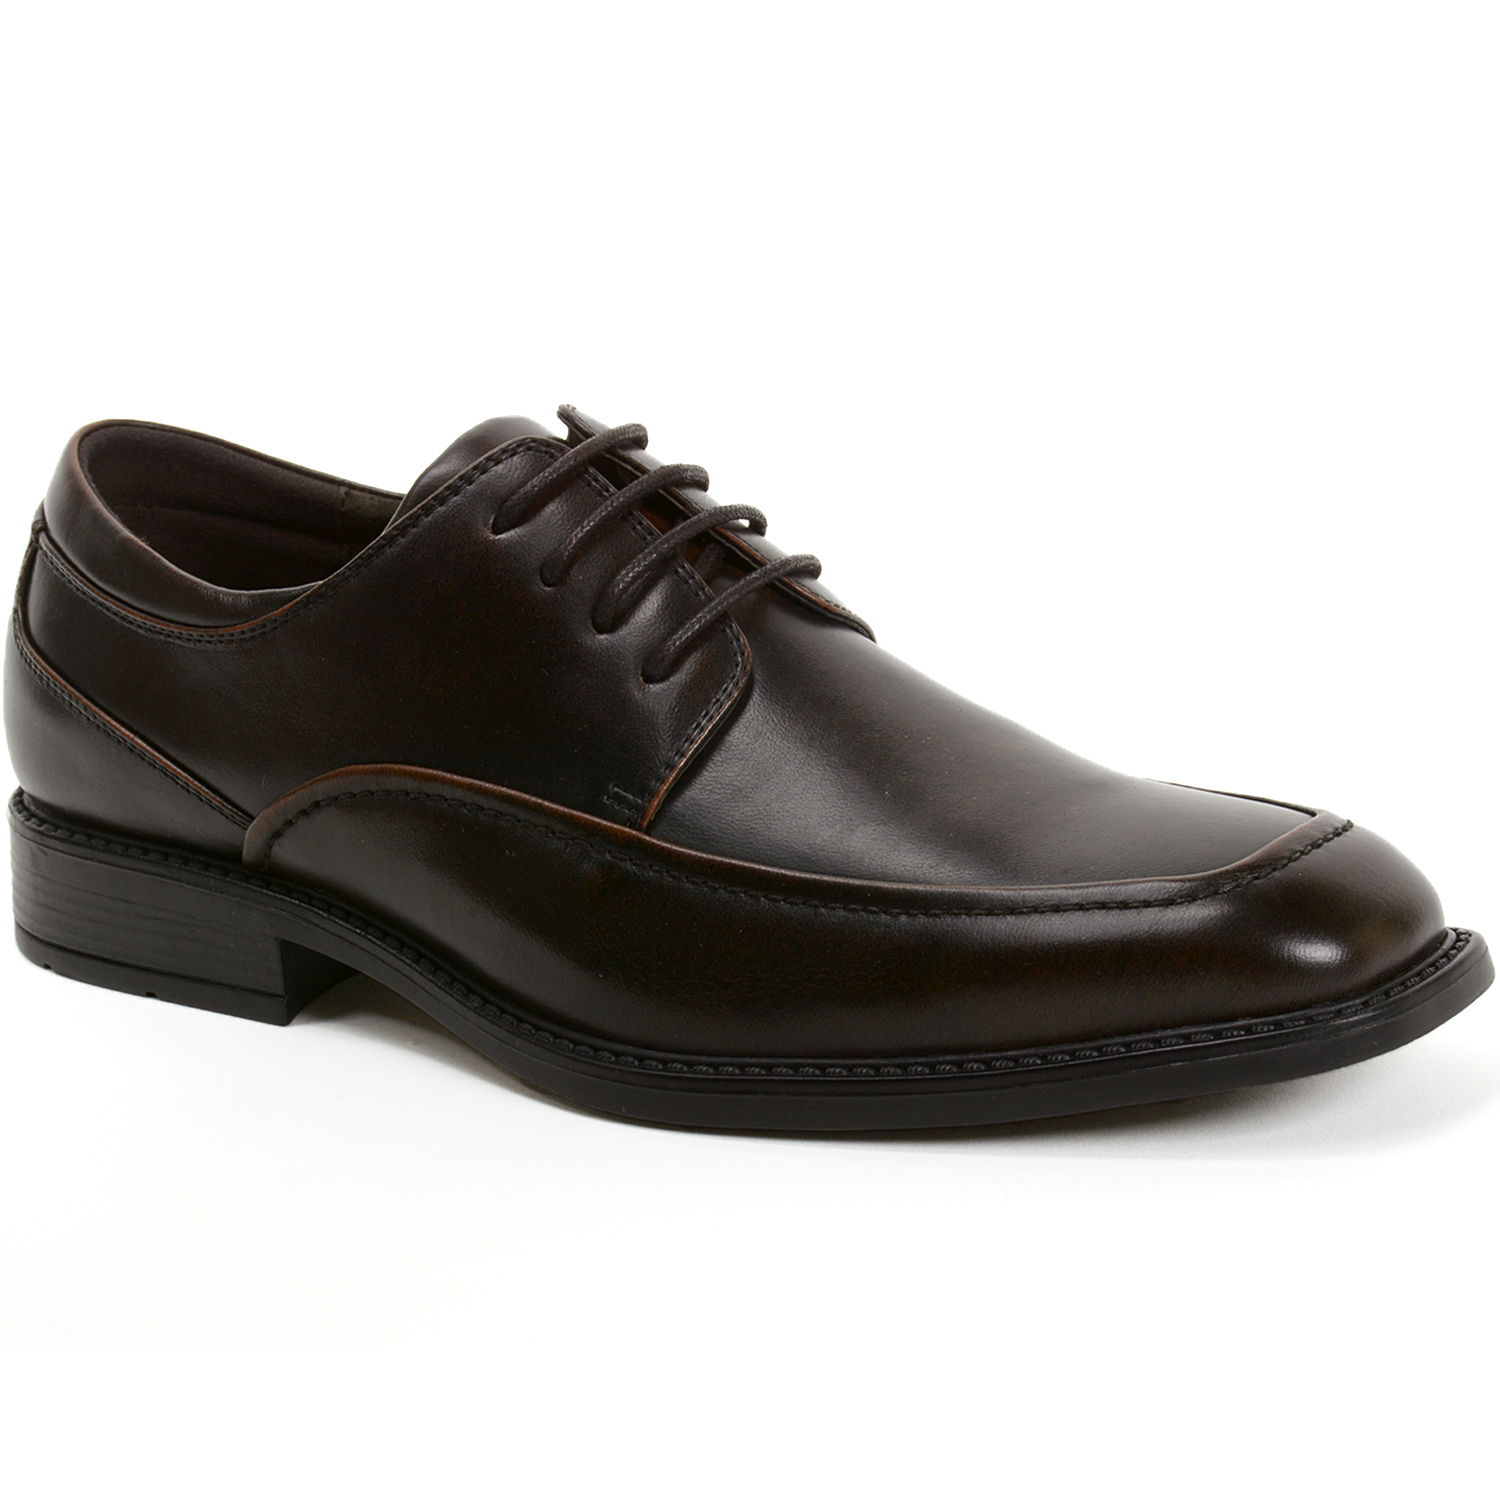 alpine swiss claro mens oxfords dress shoes lace up